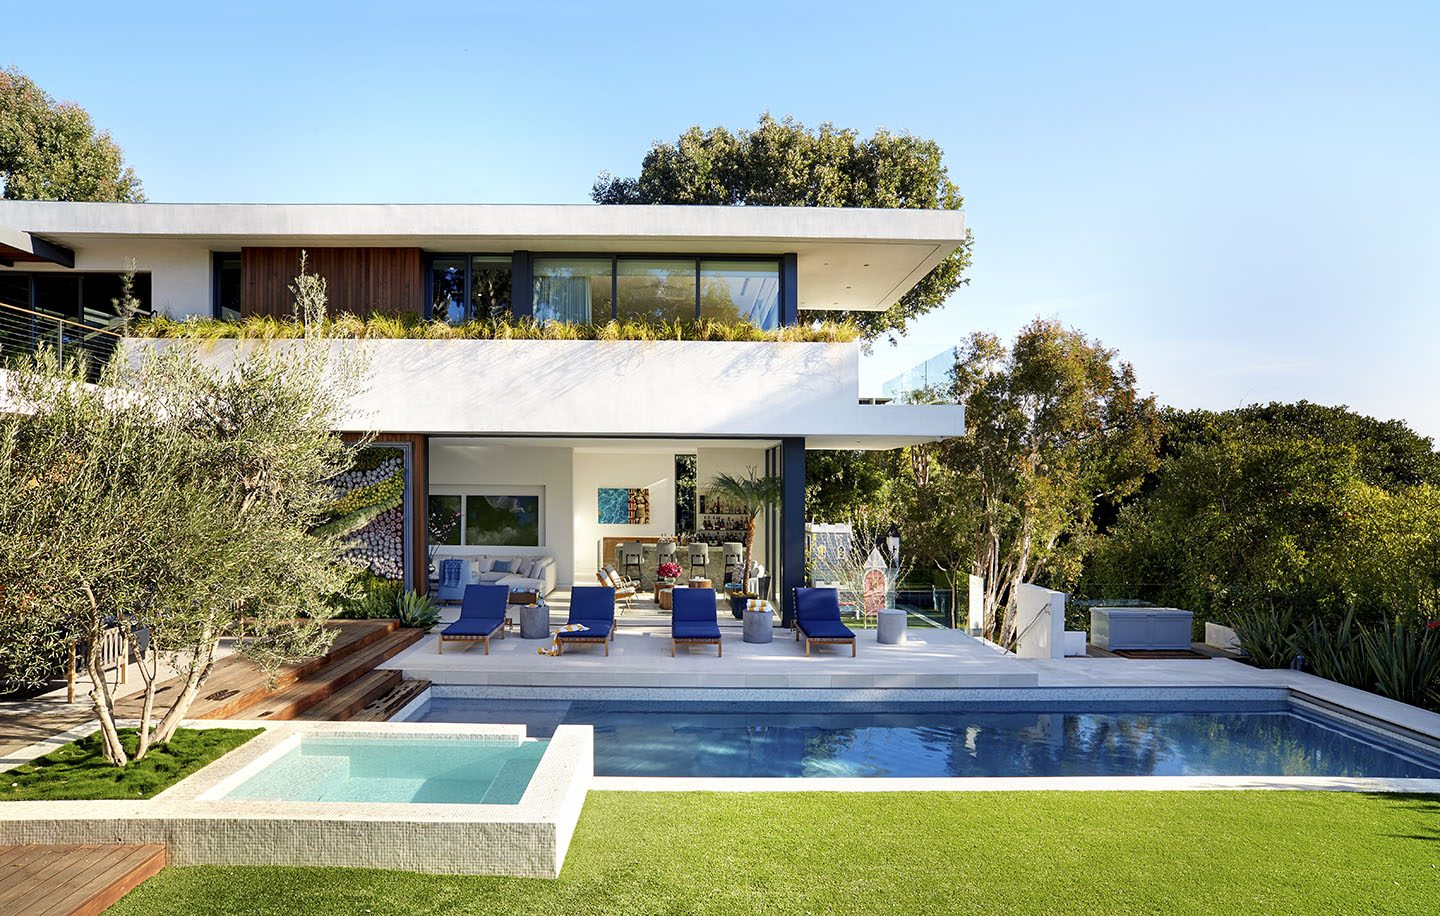 Adam Hunter designed modern home with swimming pool and blue lounge chairs.